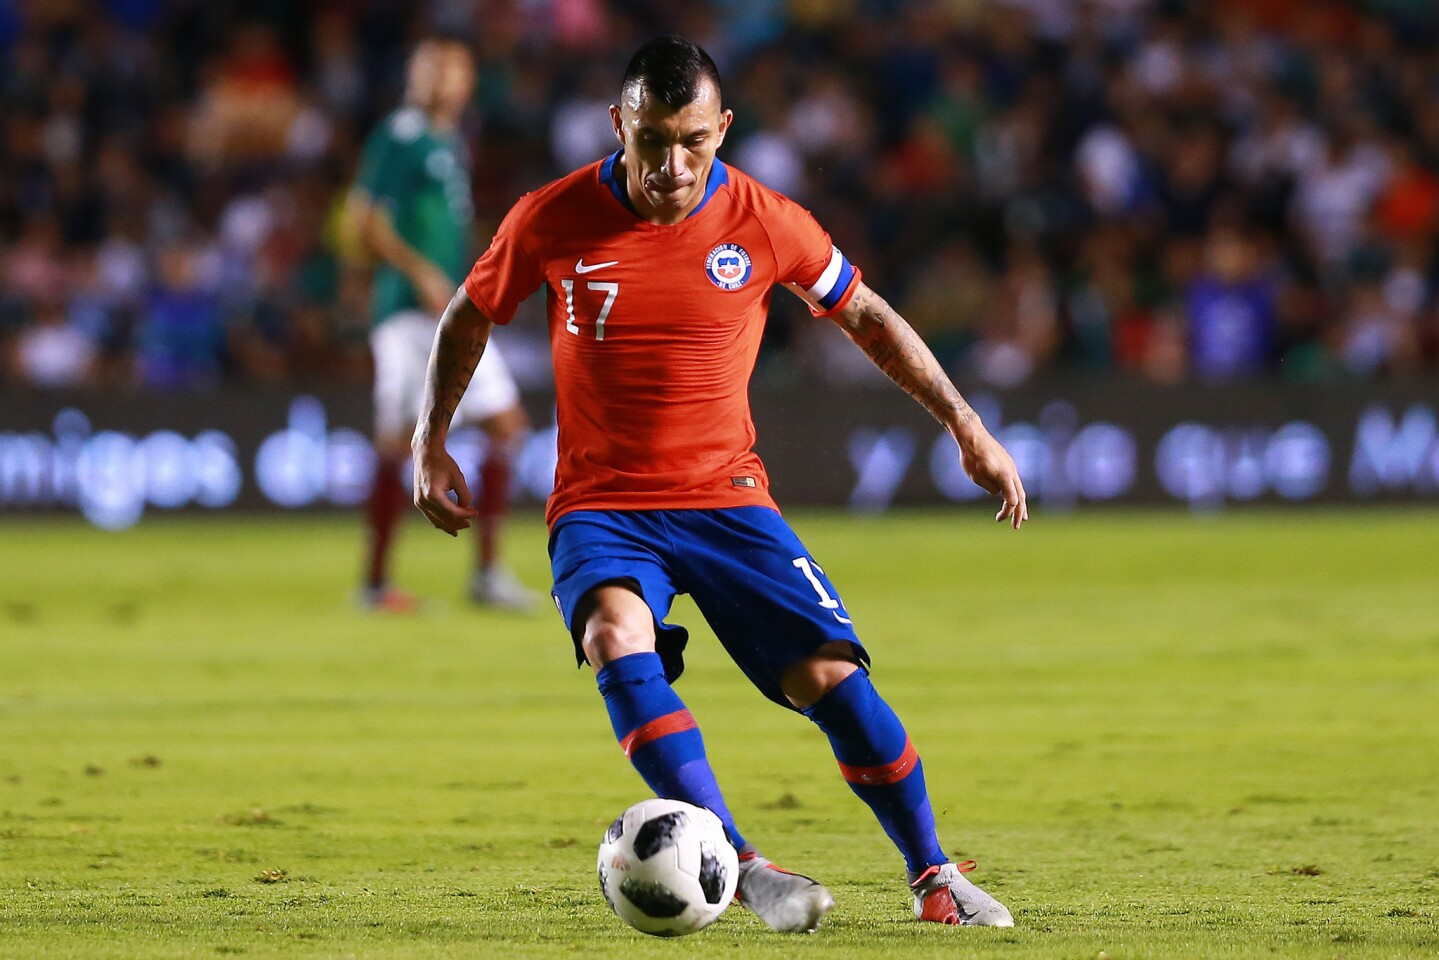 QUERETARO, MEXICO - OCTOBER 16: Gary Medel of Chile controls the ball during the international friendly match between Mexico and Chile at La Corregidora Stadium on October 16, 2018 in Queretaro, Mexico. (Photo by Manuel Velasquez/Getty Images) ** OUTS - ELSENT, FPG, CM - OUTS * NM, PH, VA if sourced by CT, LA or MoD **